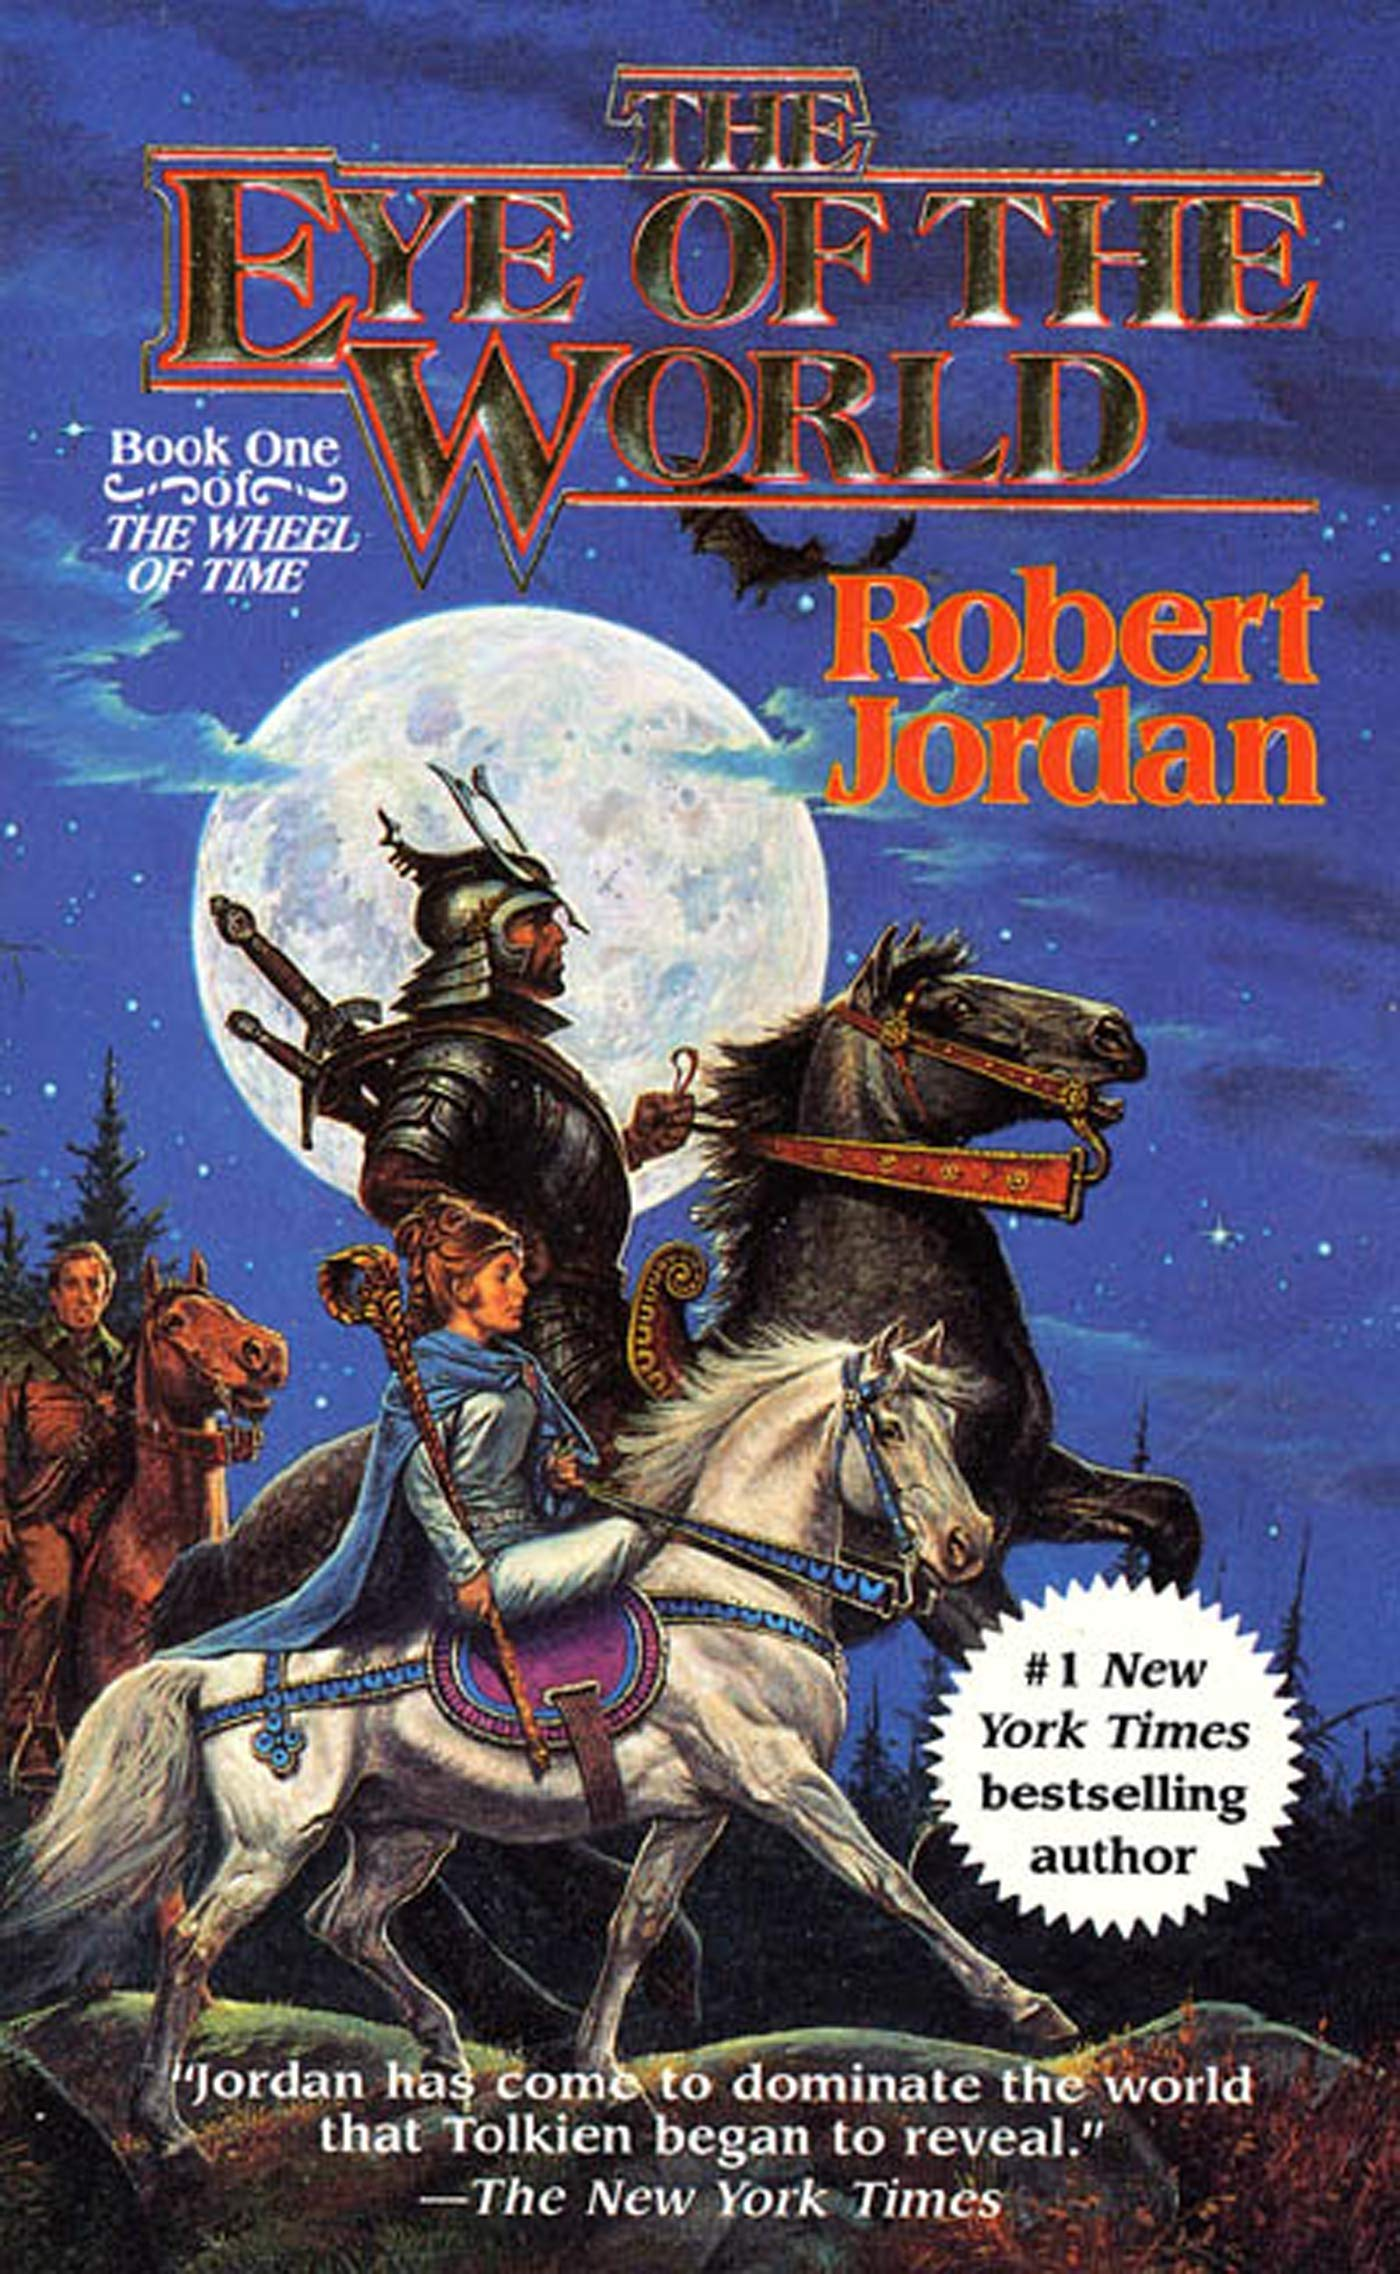 Image result for the wheel of time cover